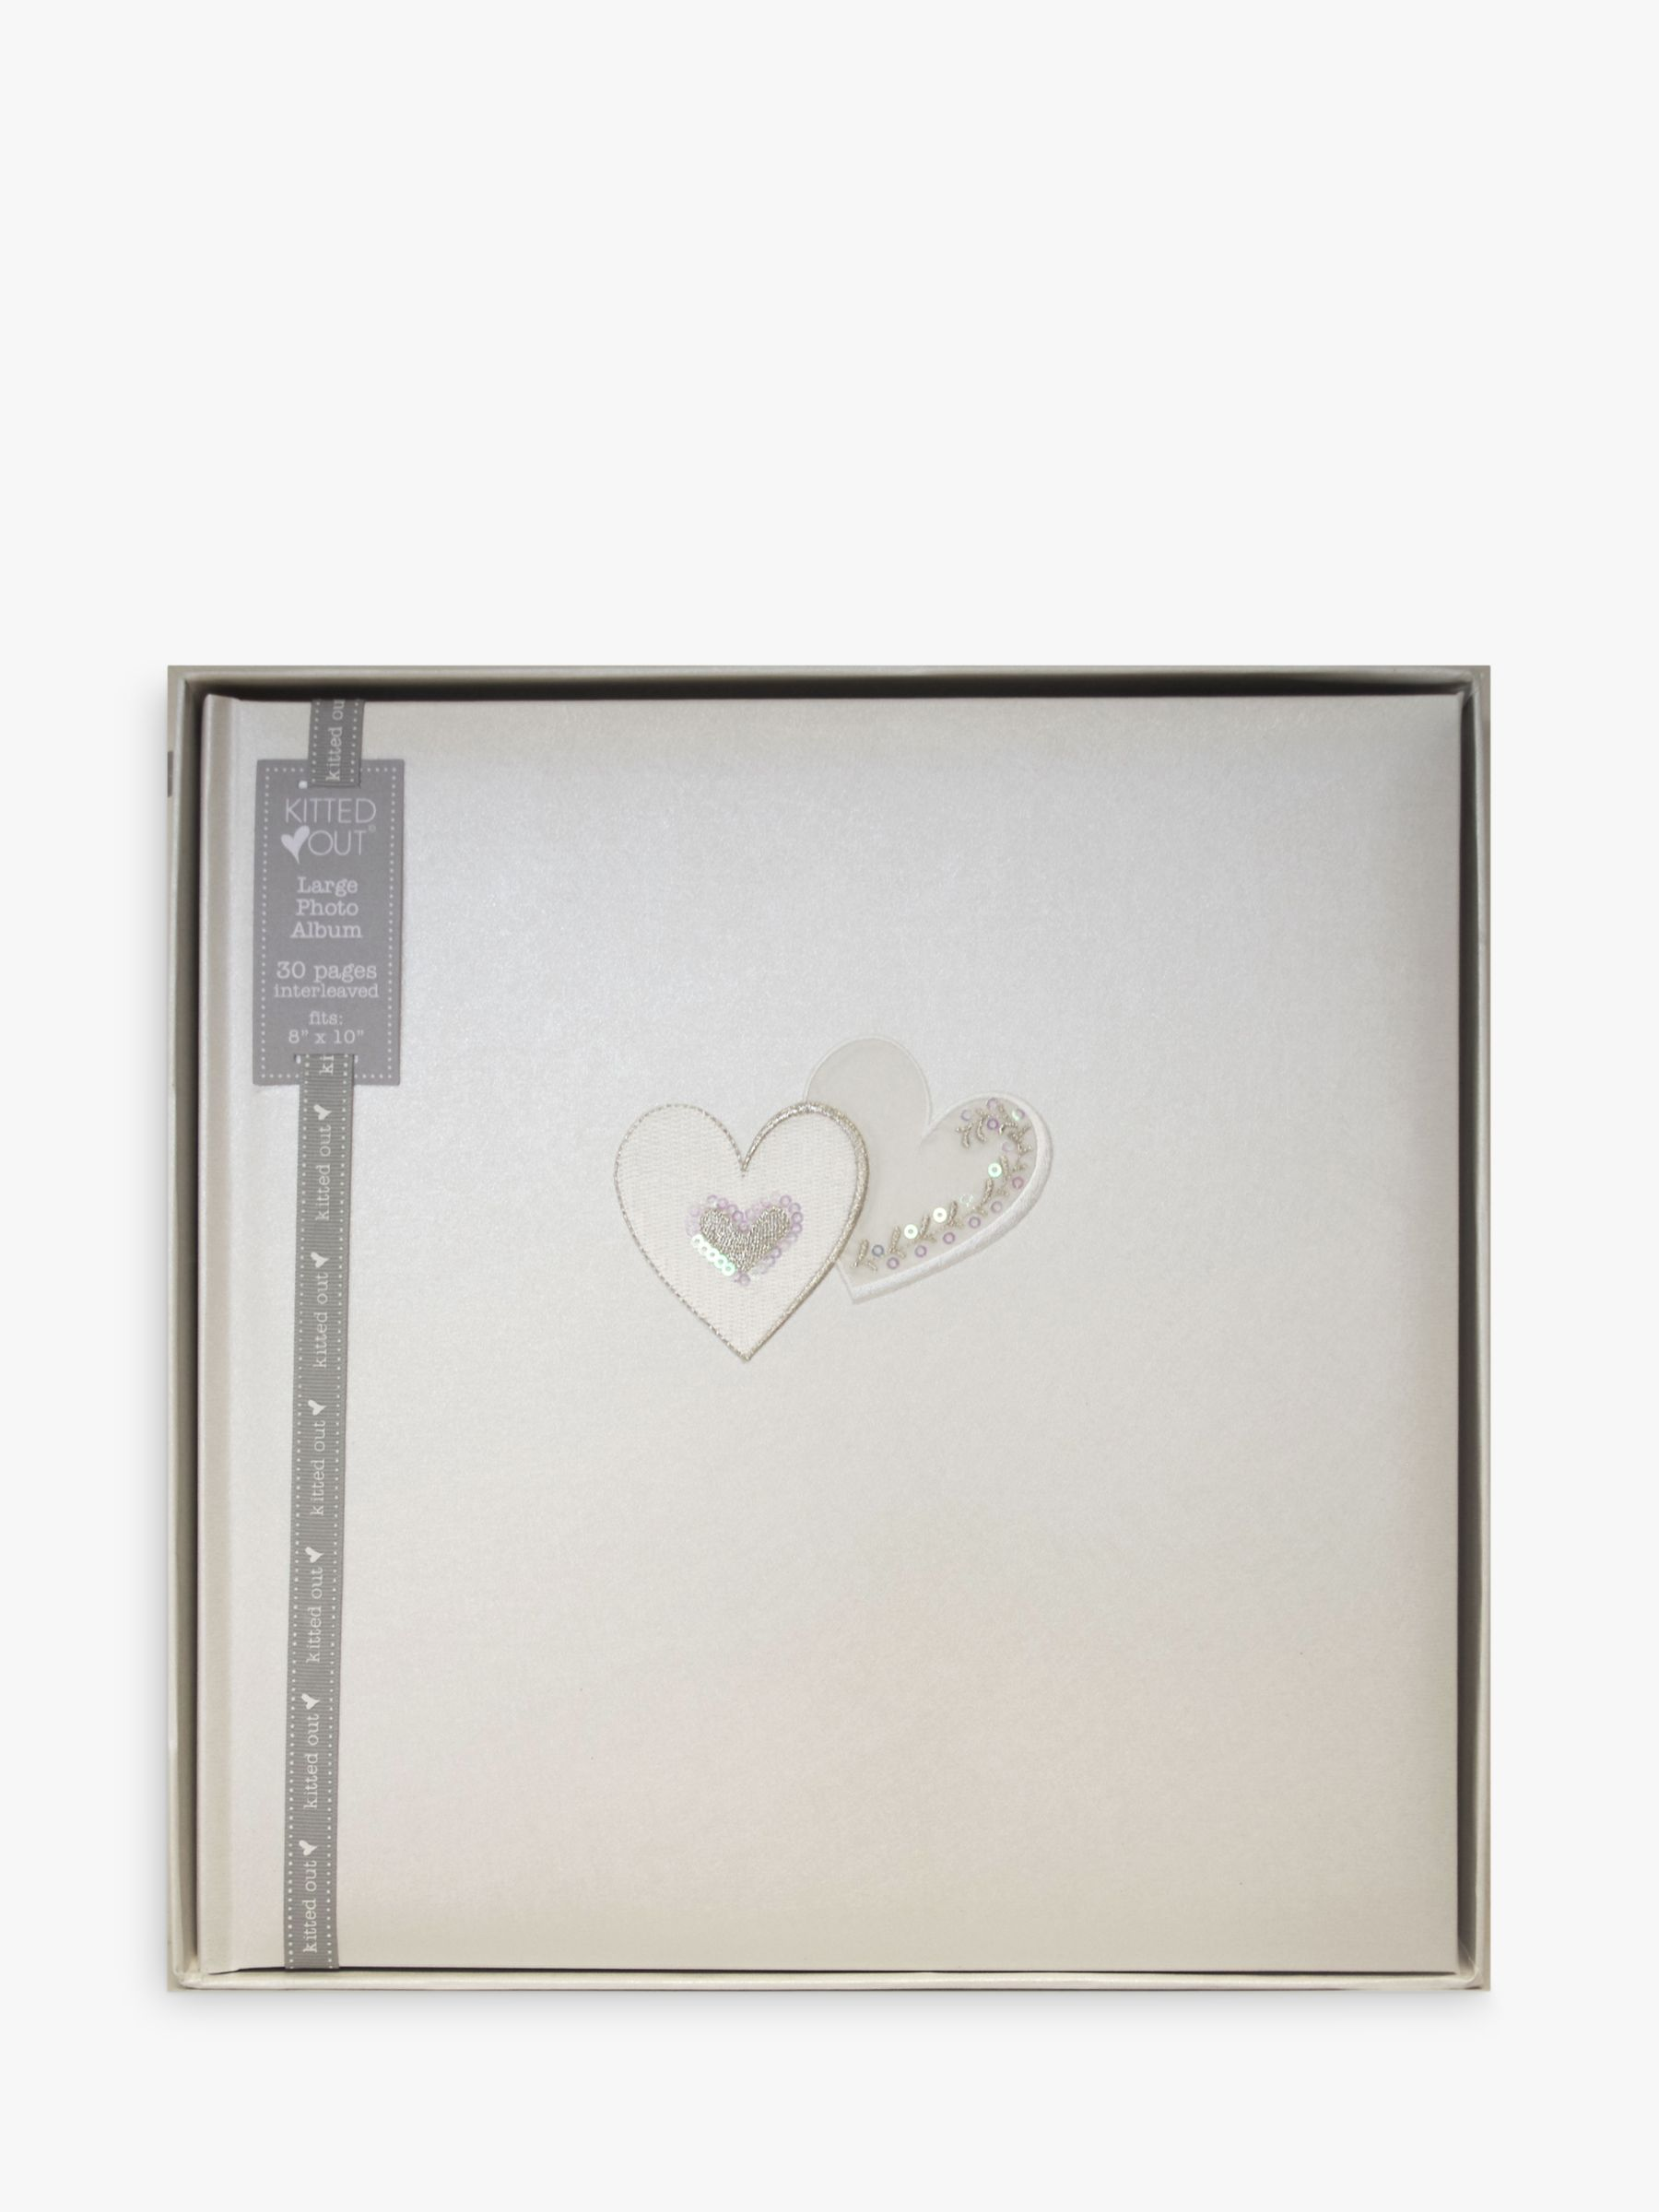 John Lewis Wedding Gift List Review : Buy Hearts Traditional Photo Album, Large Online at johnlewis.com